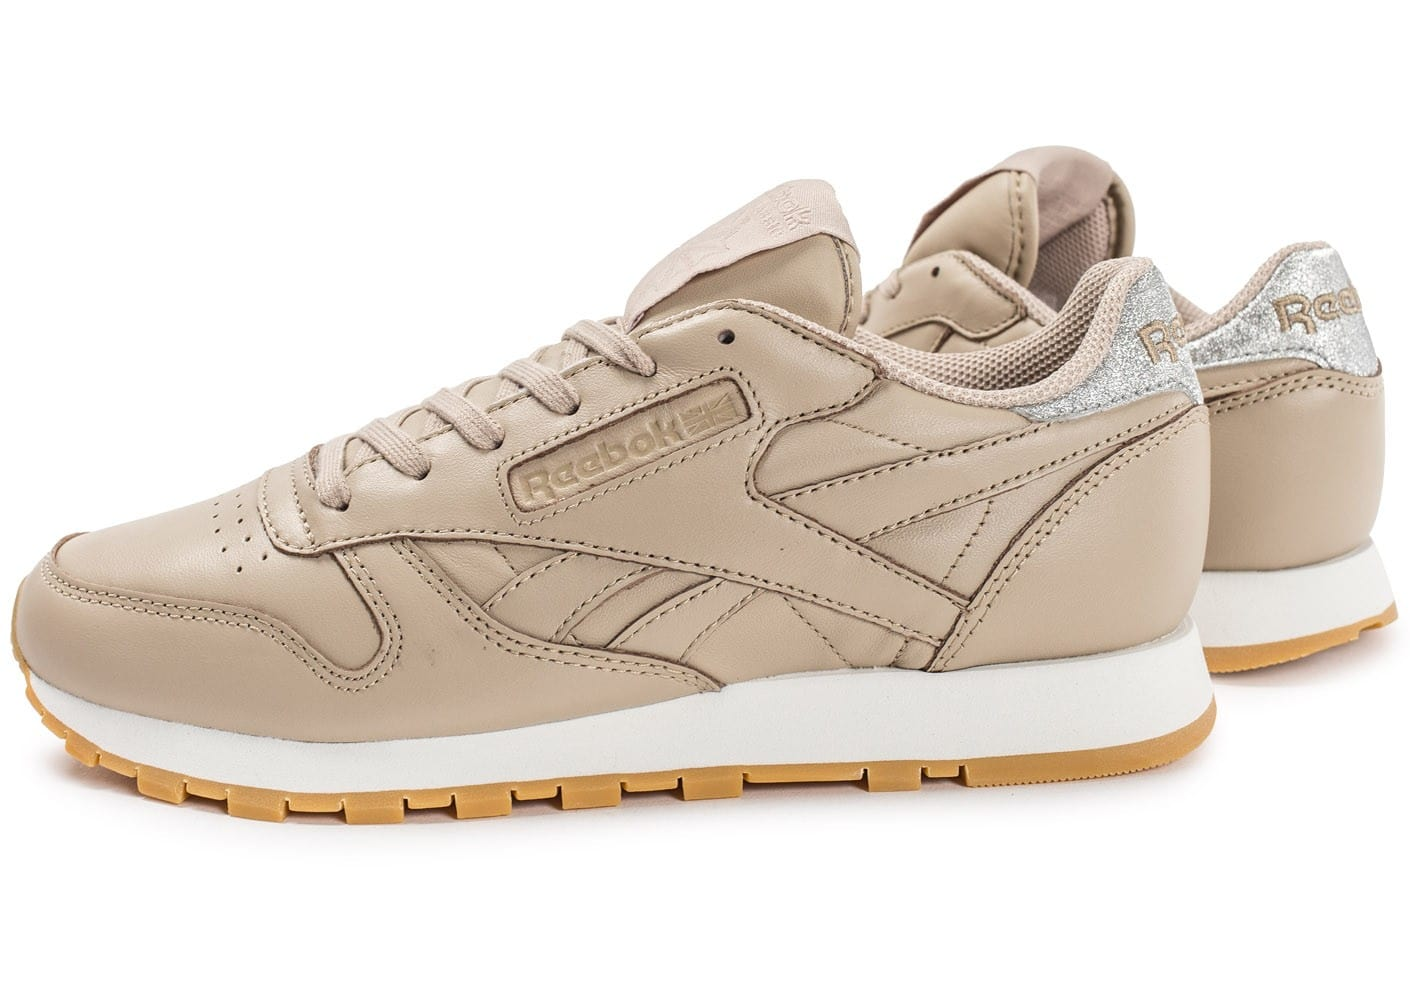 Classic Beige Leather Leather Beige Leather Reebok Reebok Classic Classic Reebok Beige jLqGSMzpVU